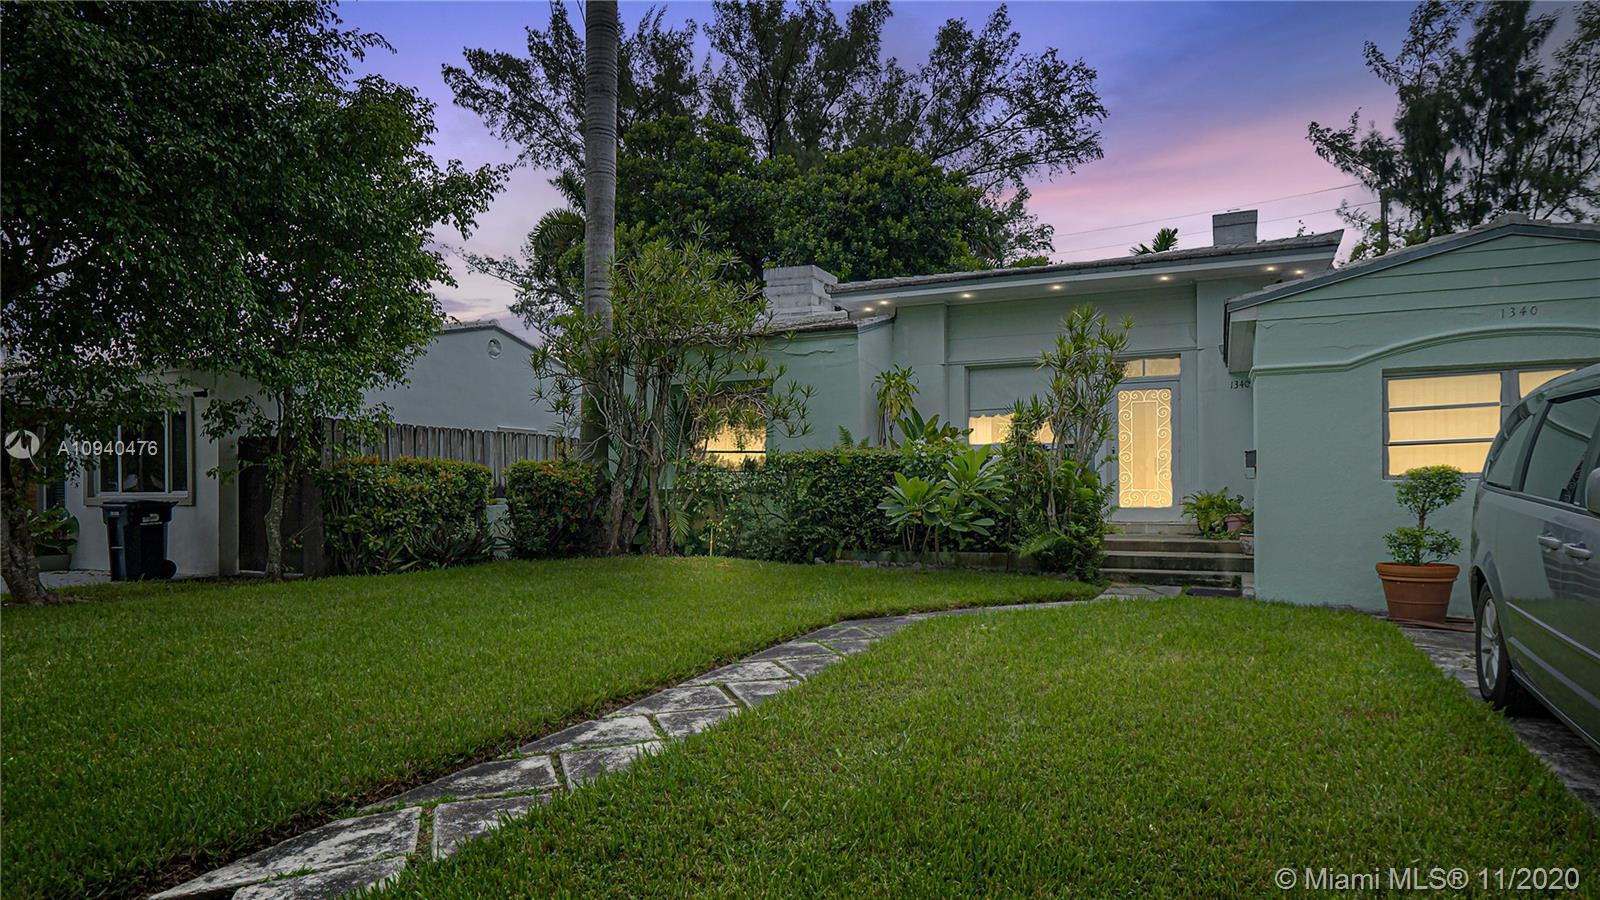 1938 Architectural Gem. Best priced home on a residential street in Miami Beach. Gorgeous original t